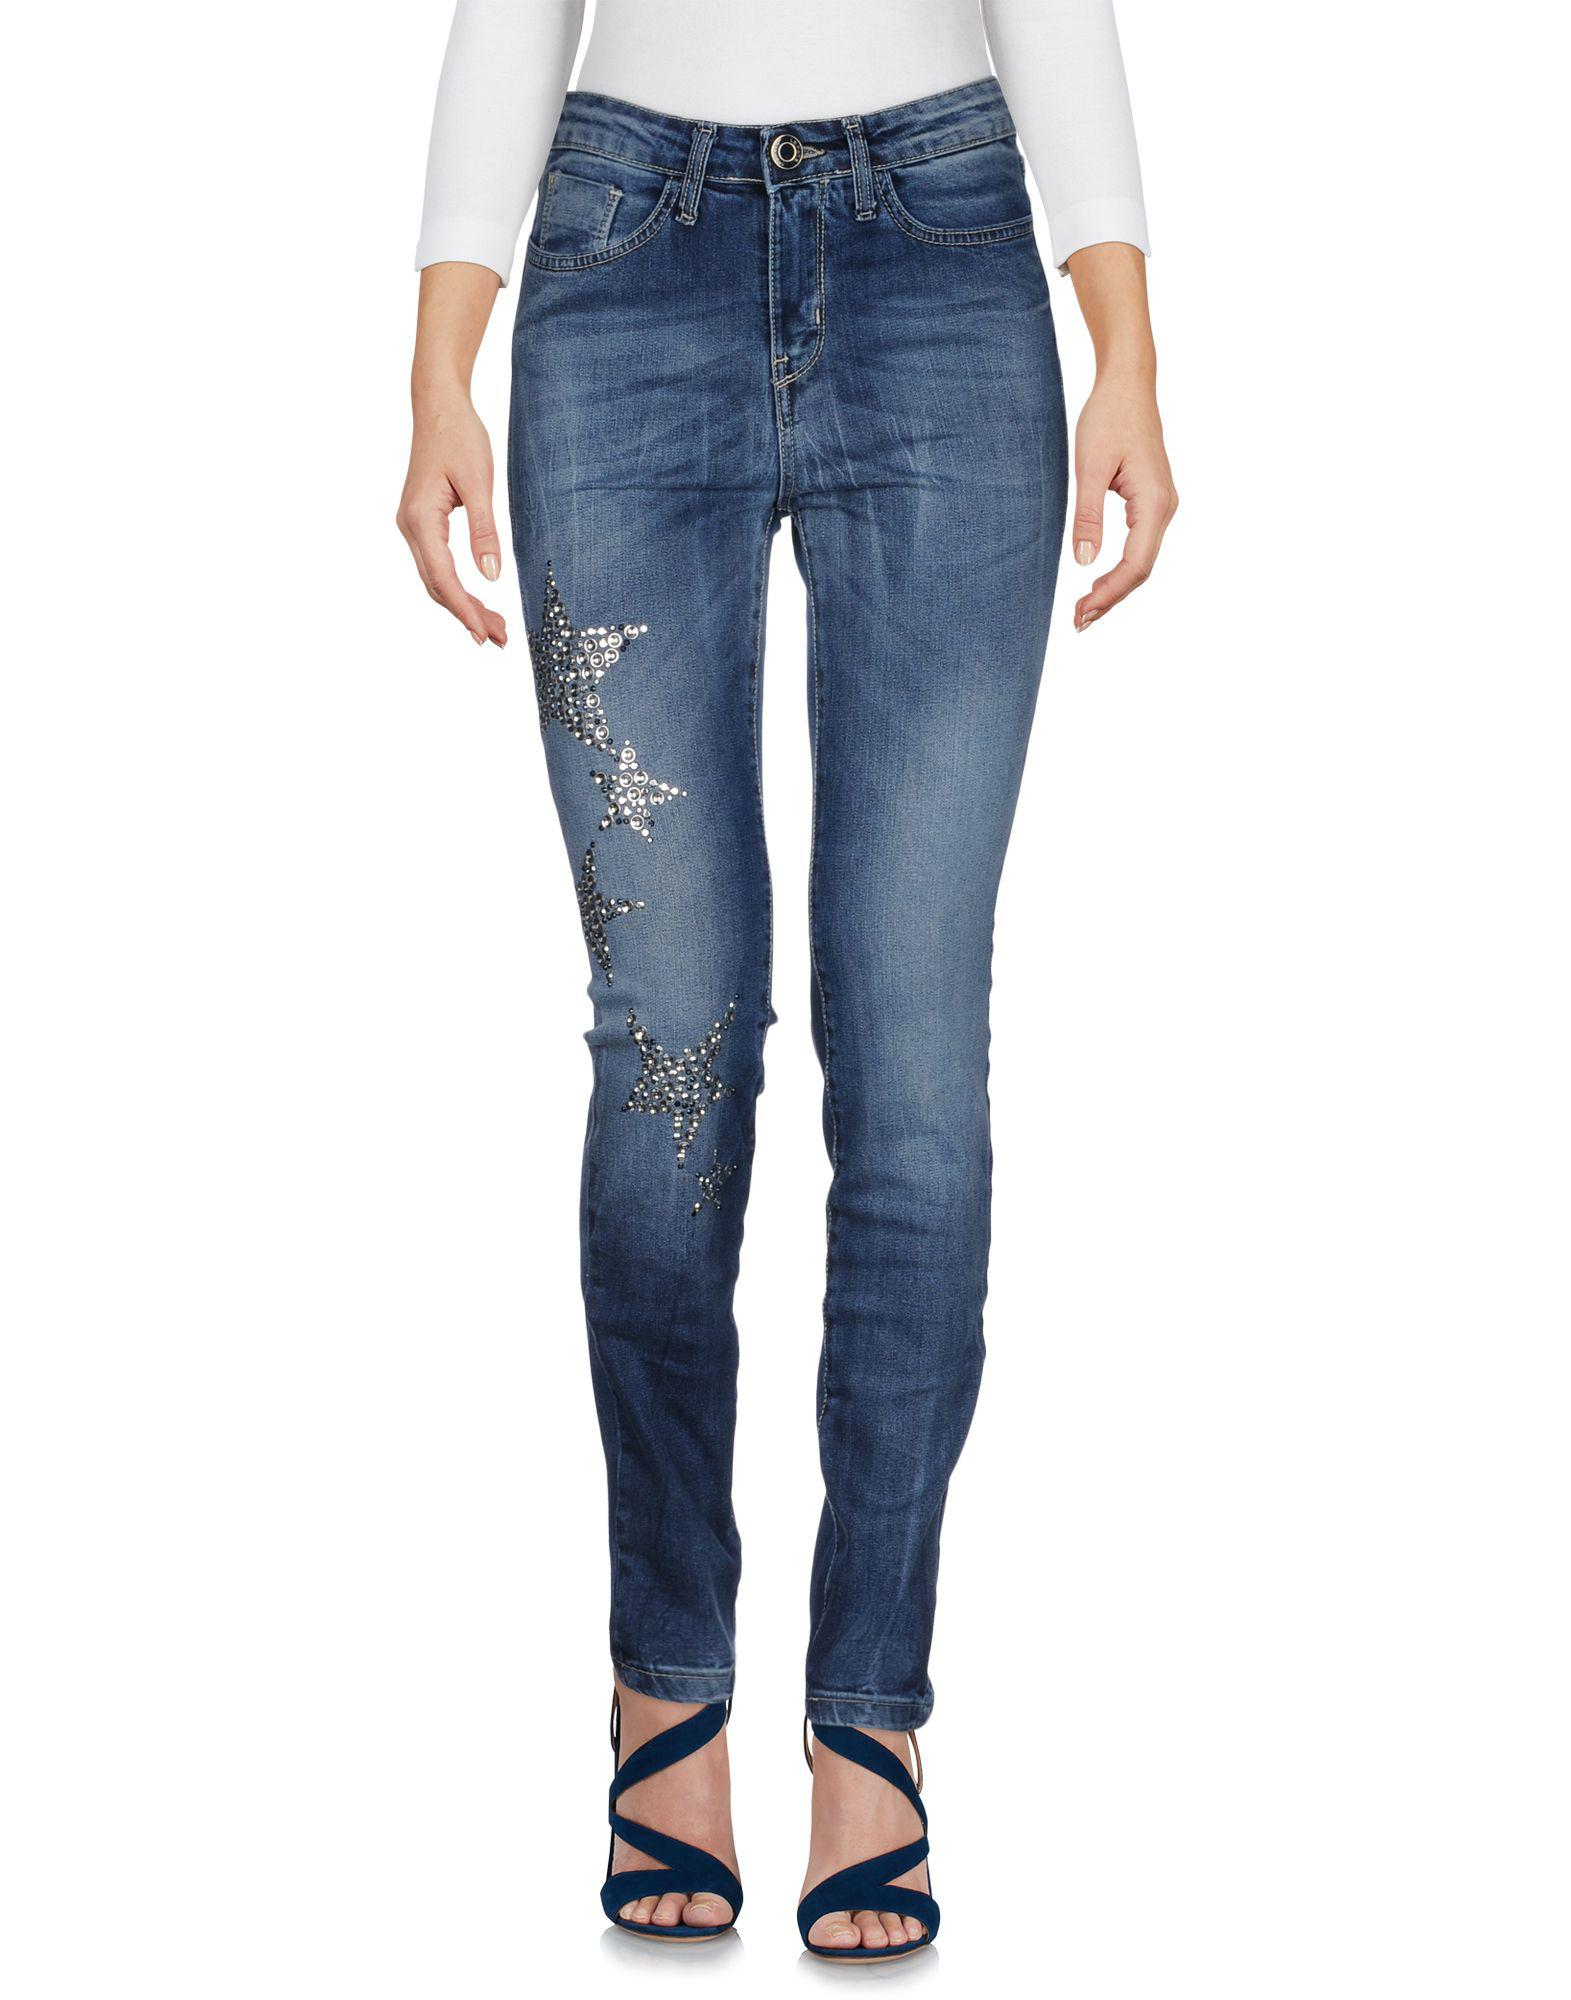 DENIM - Denim trousers Le Fate Sale Brand New Unisex Outlet Best Prices Clearance Store Cheap Price PEmJVemt4r